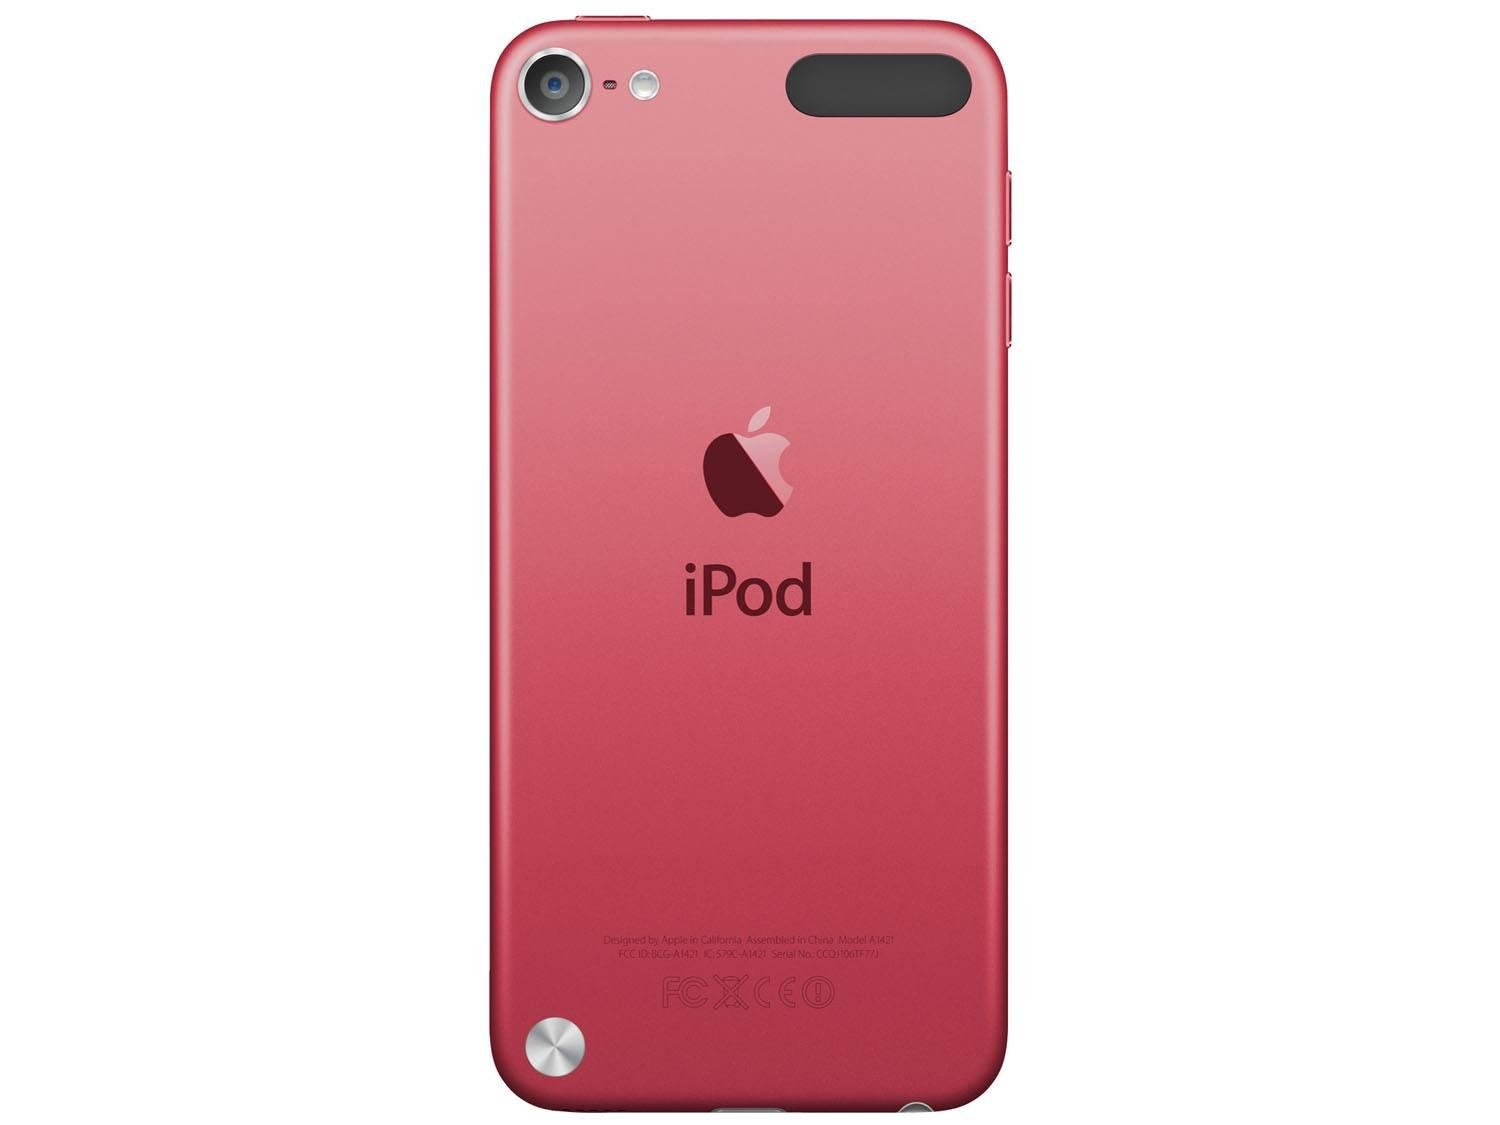 Foto 2 - iPod Touch Apple 16GB Multi-Touch Wi-Fi Bluetooth - Câmera 5MP MGFY2BZ/A Rosa